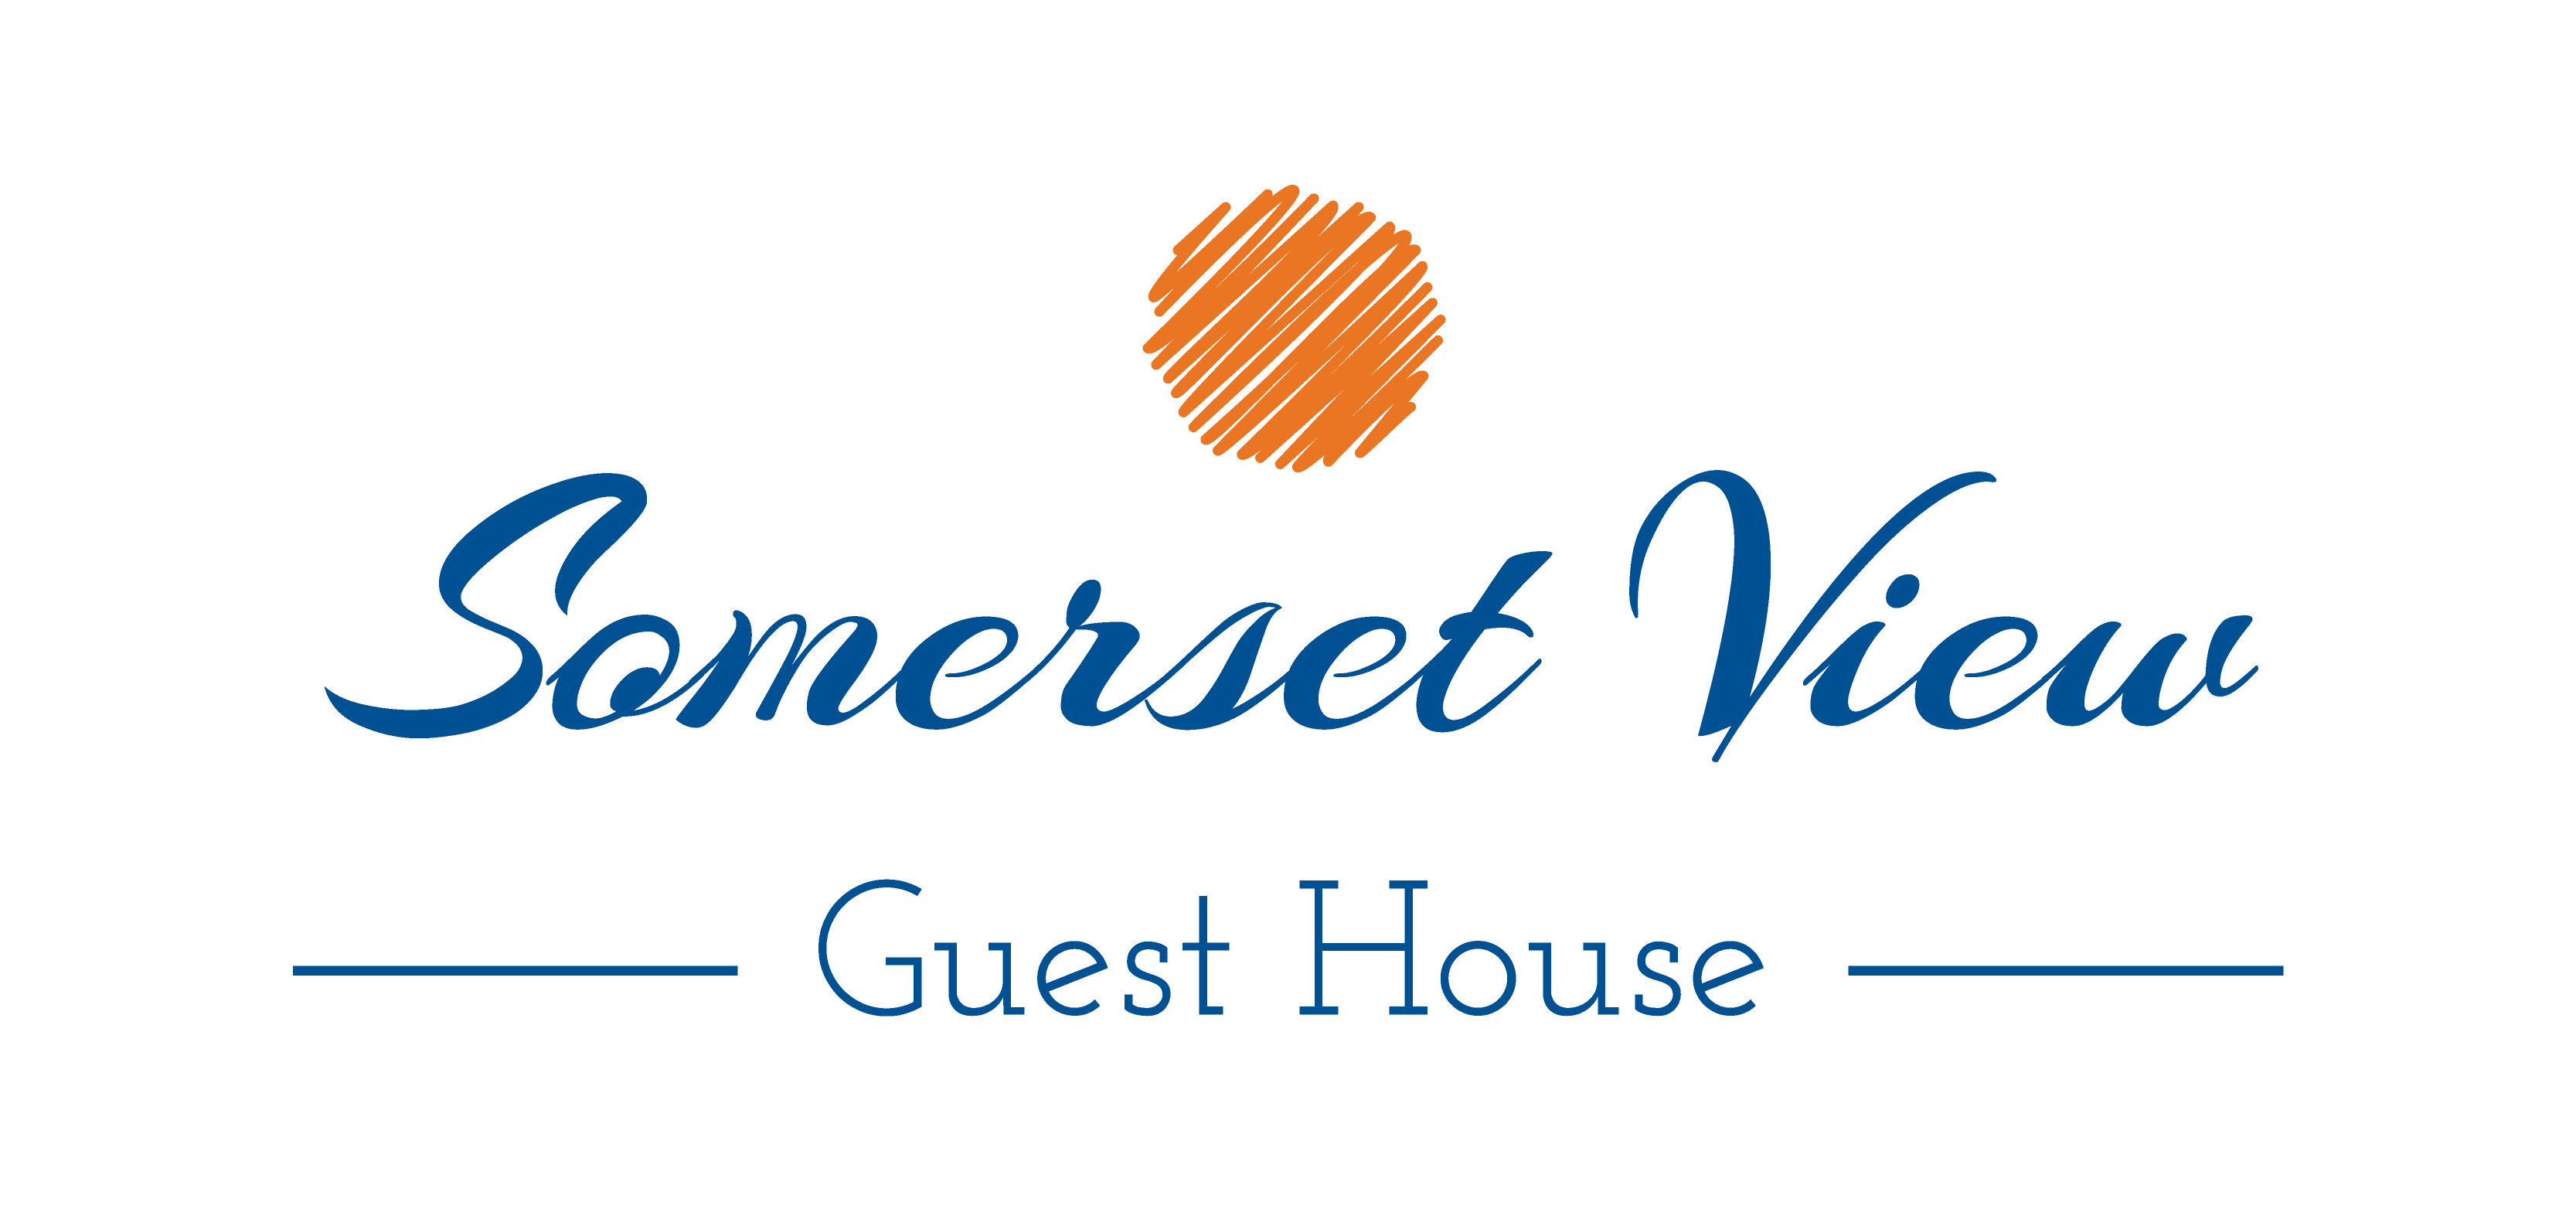 Somerset View Guest House full logo